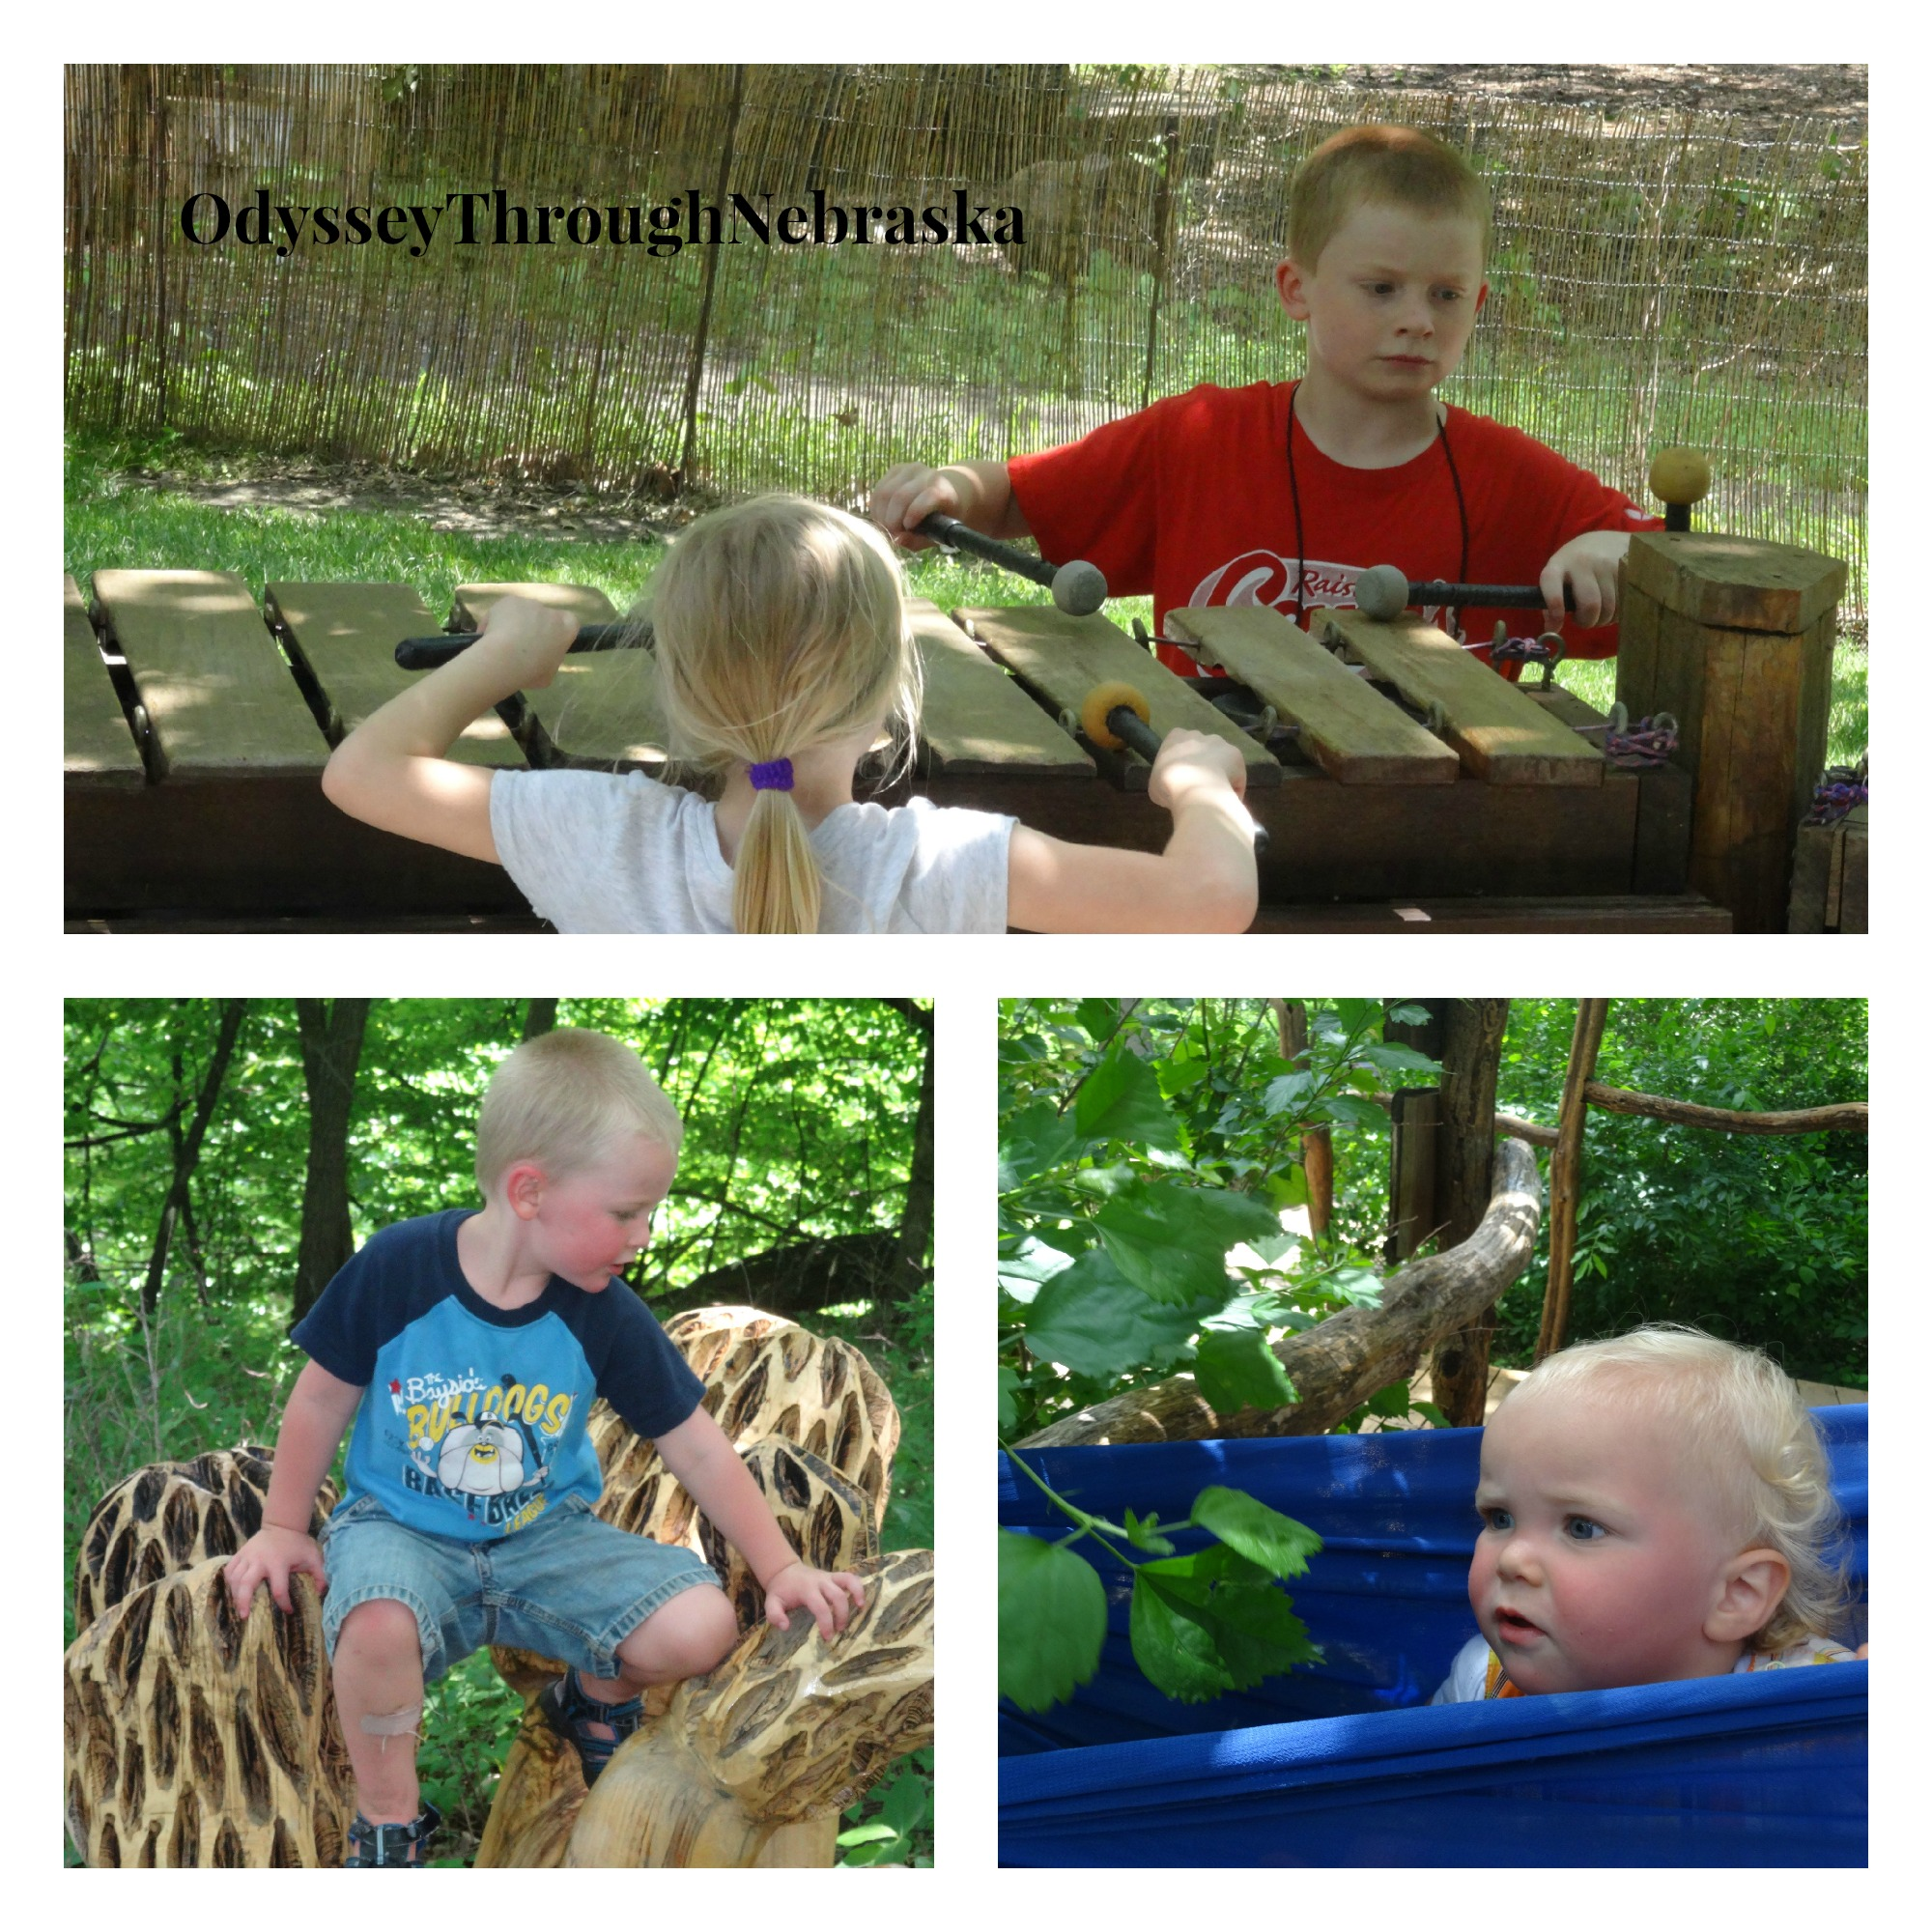 Nebraska City has much to offer visitors